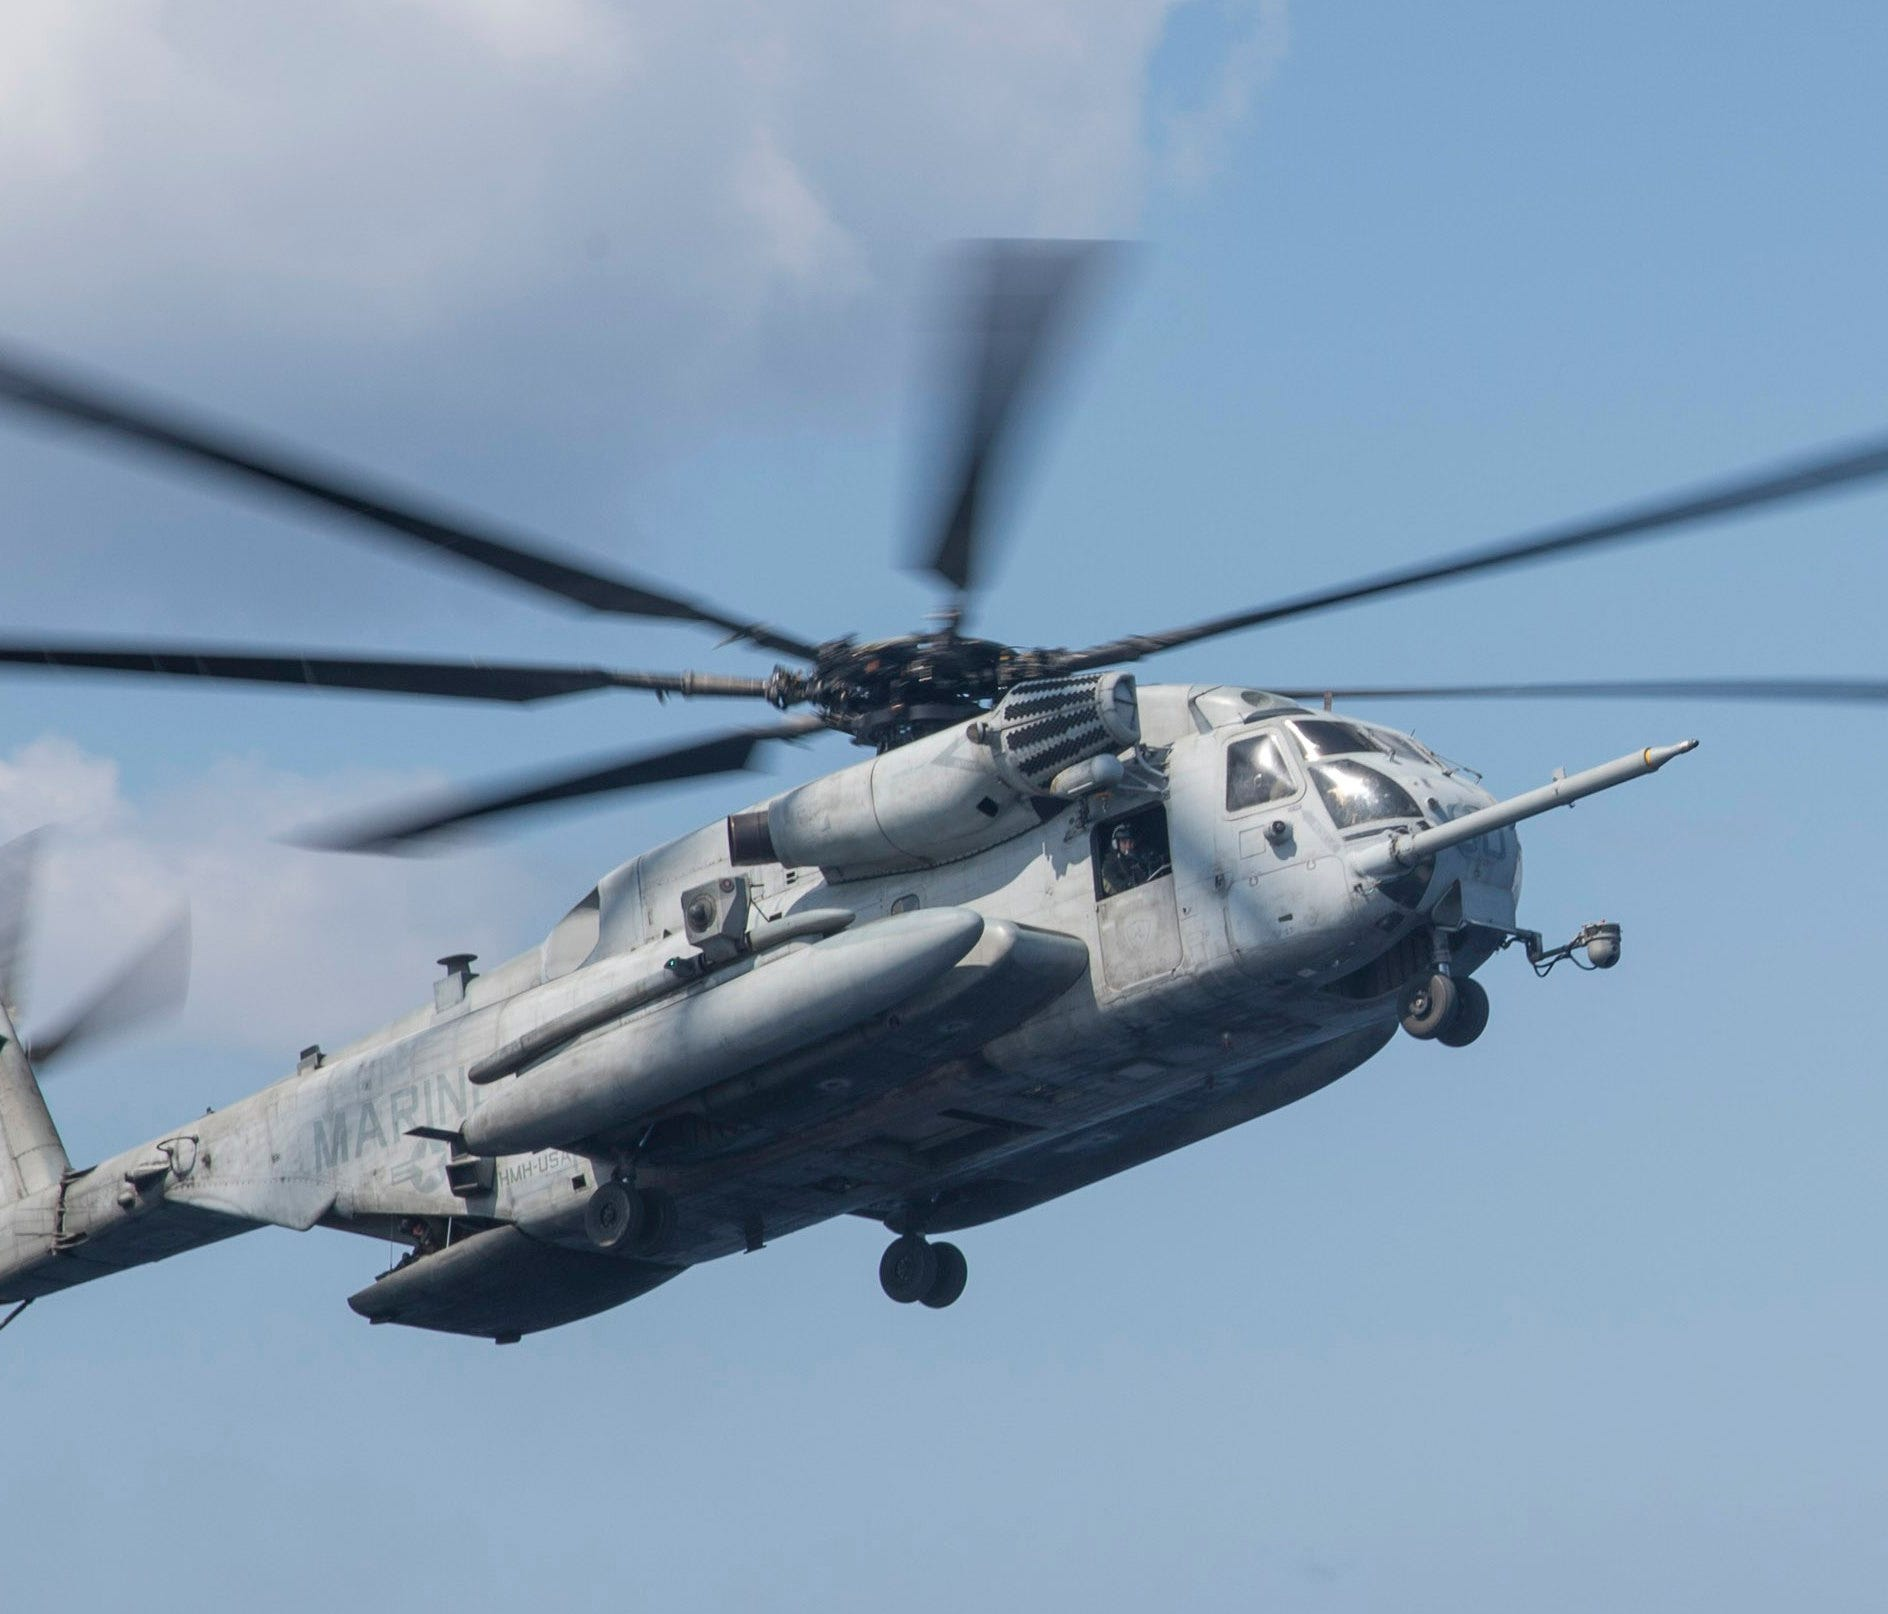 A handout photo made available by the US Navy shows a CH-53 Super Stallion, assigned to the 'Wolfpack' of Marine Heavy Helicopter Squadron (HMH) 466, approaching the flight deck of the amphibious assault ship USS Bonhomme Richard (LHD 6) in the Phili